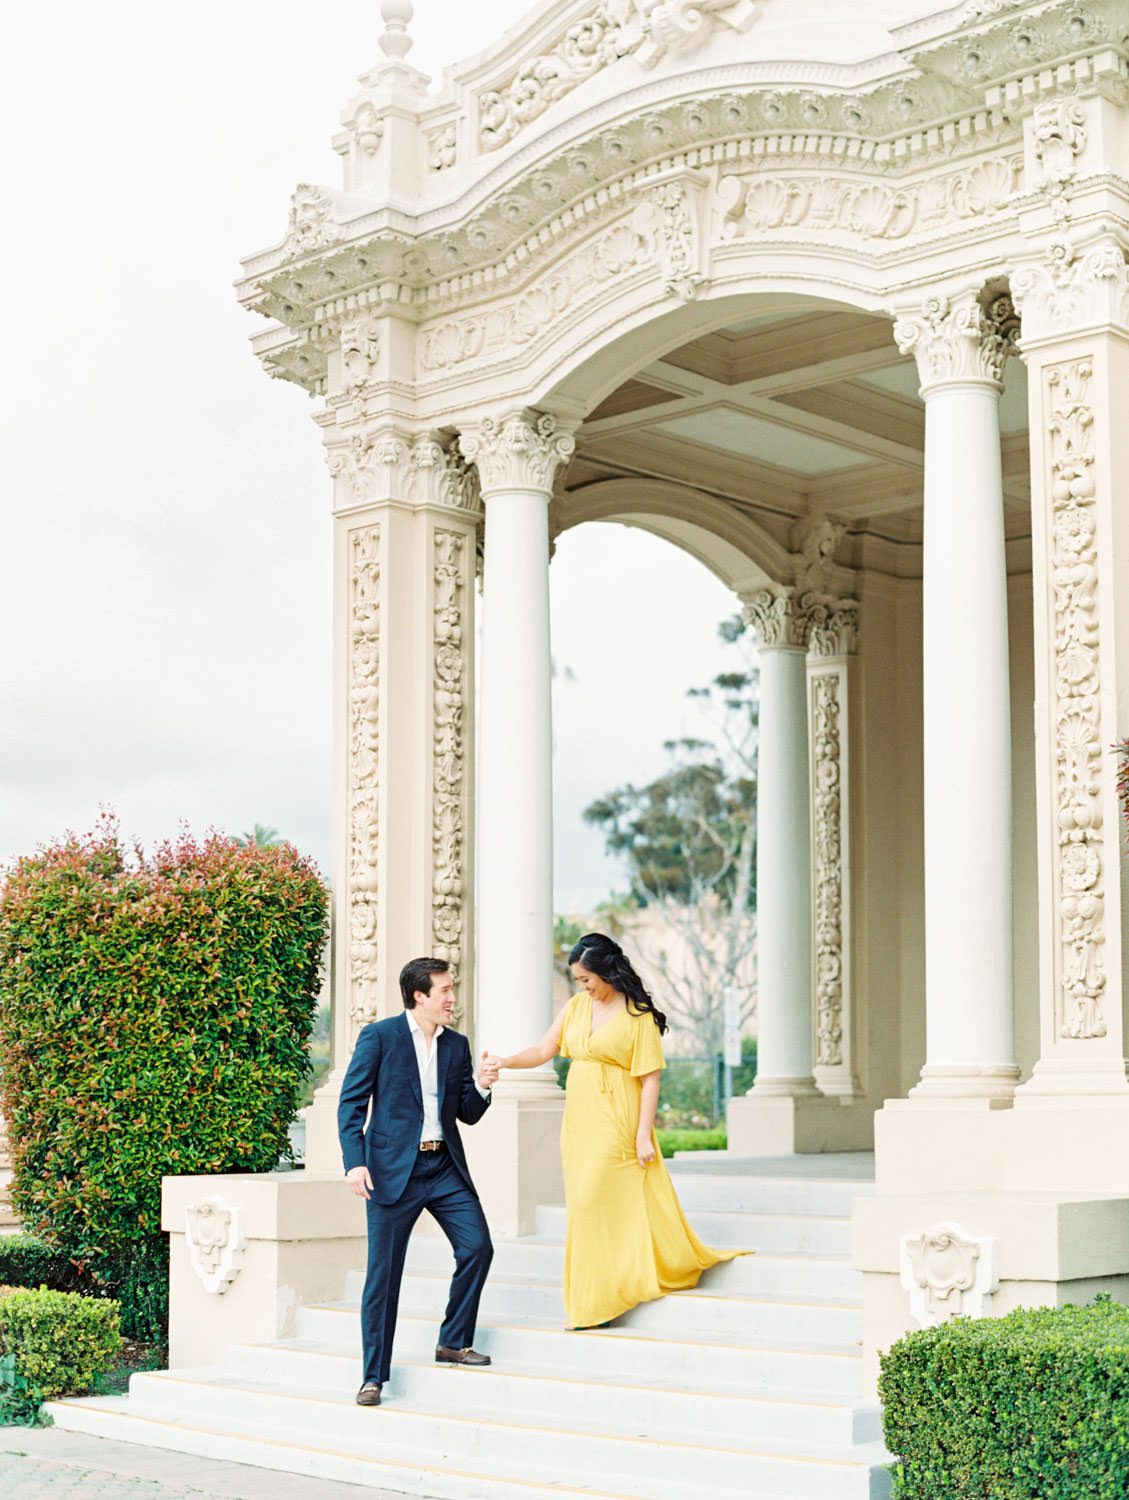 Bride in yellow flowy dress and groom in navy suit walking down stairs, Film Balboa Park Organ Pavilion Engagement Photos by Cavin Elizabeth Photography